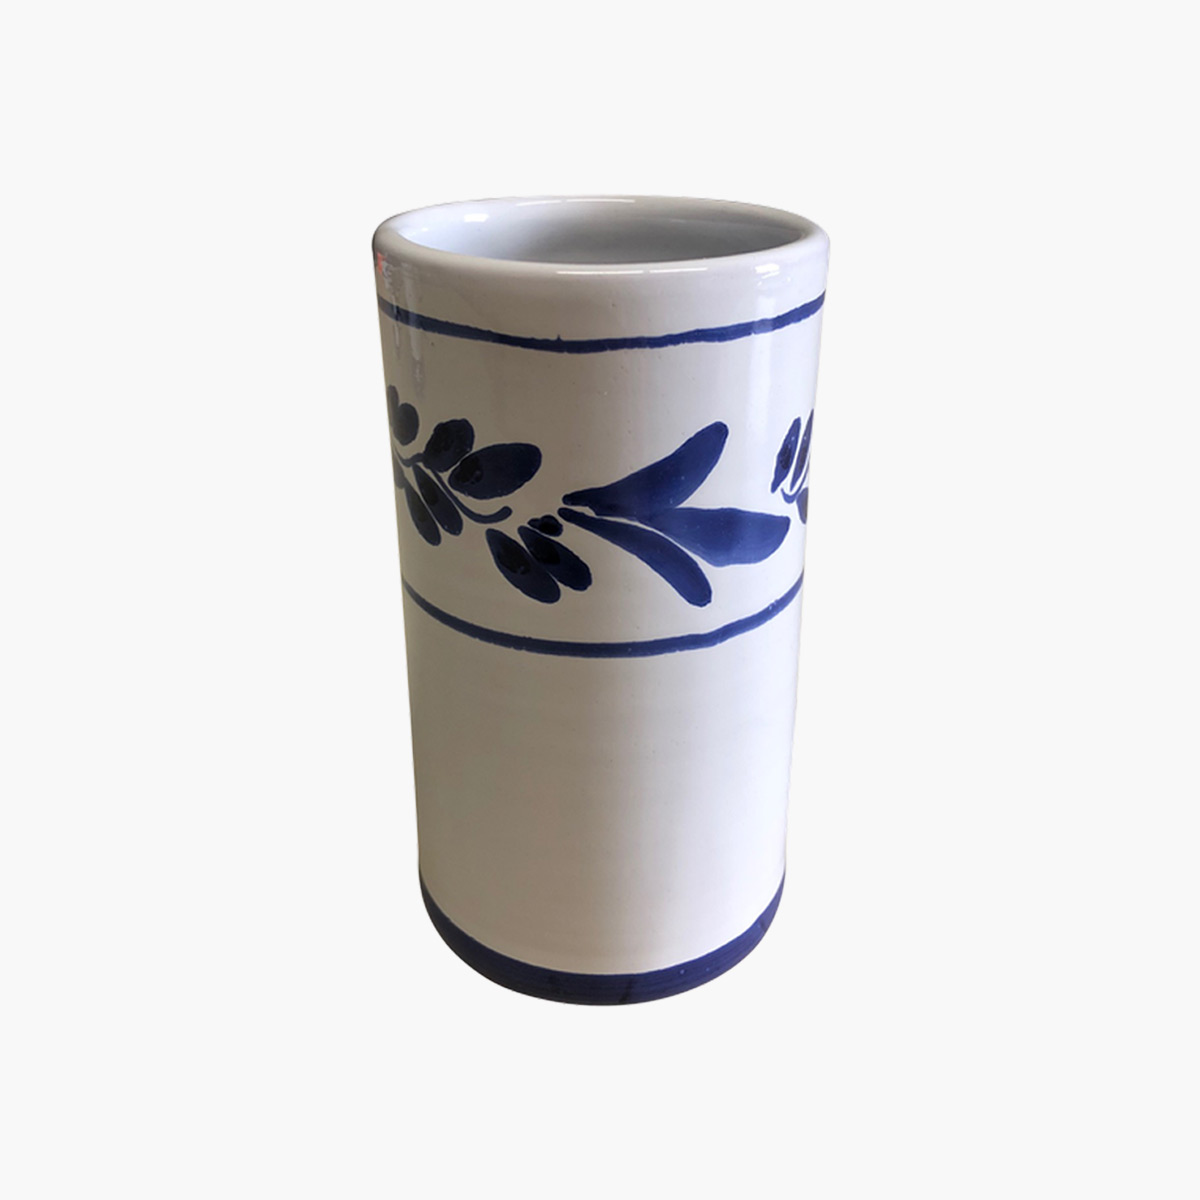 A blue and white Vieira hand crafted vase.